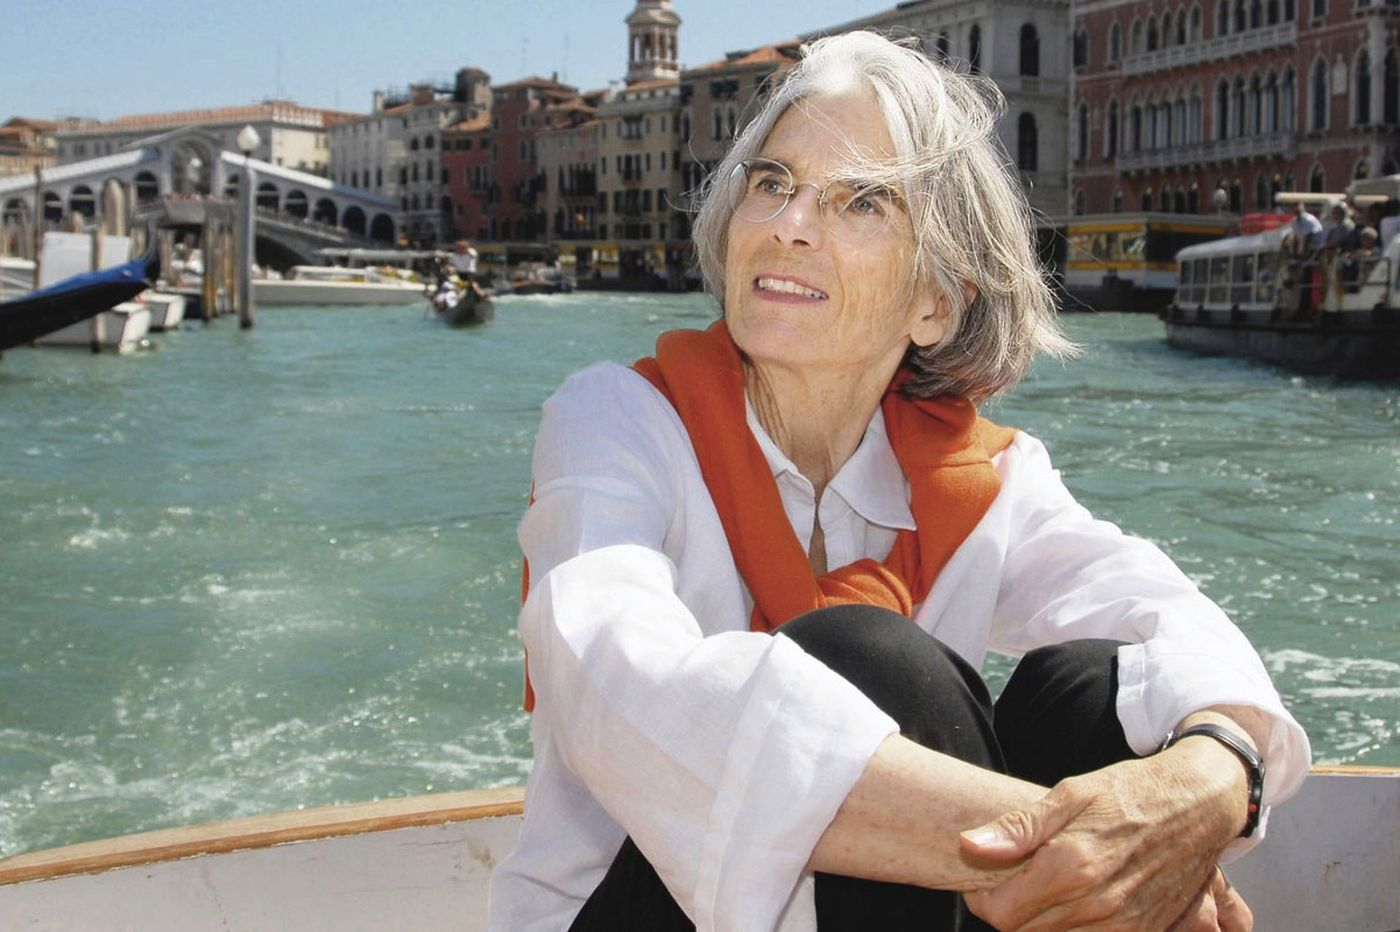 Venice-via-New Jersey novelist Donna Leon celebrates 25th Commissario Brunetti mystery